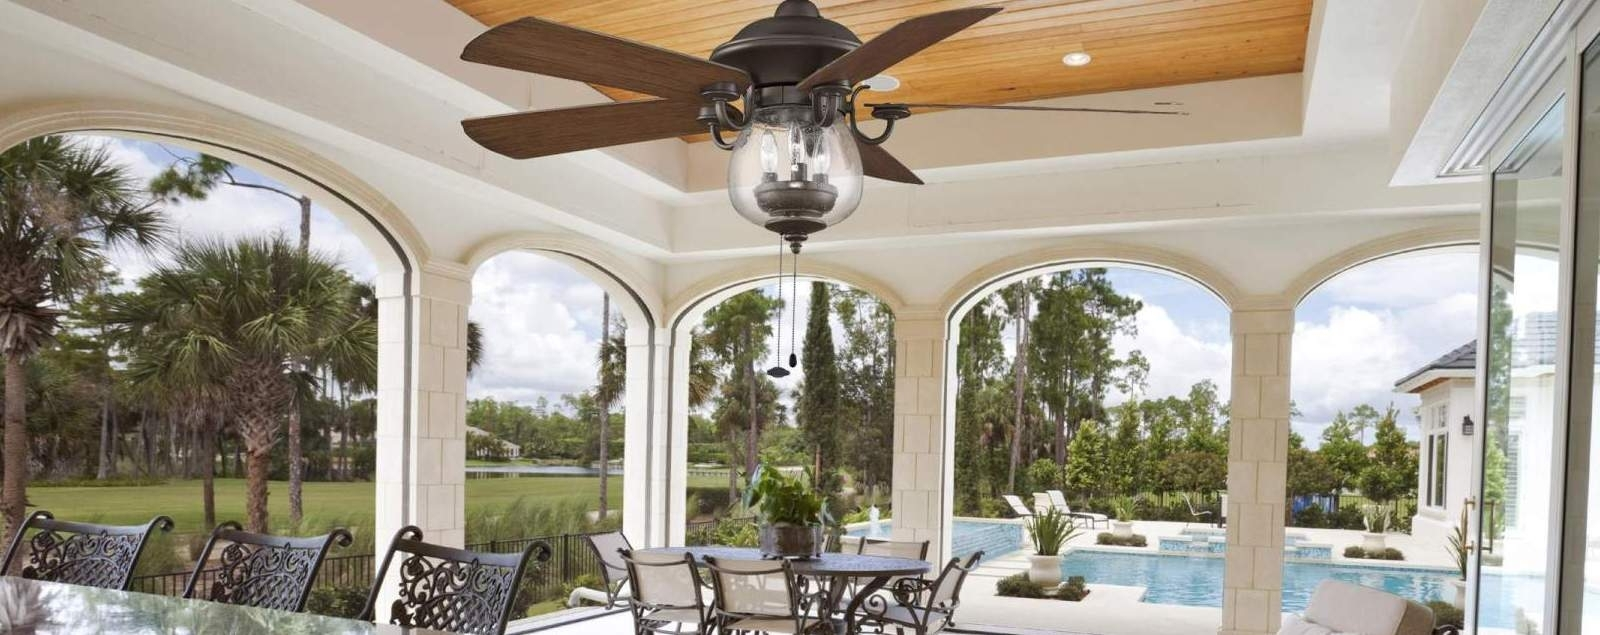 Preferred Outdoor Ceiling Fans – Choose Wet Rated Or Damp Rated For Your Space! Throughout Outdoor Ceiling Fans With Wet Rated Lights (View 16 of 20)